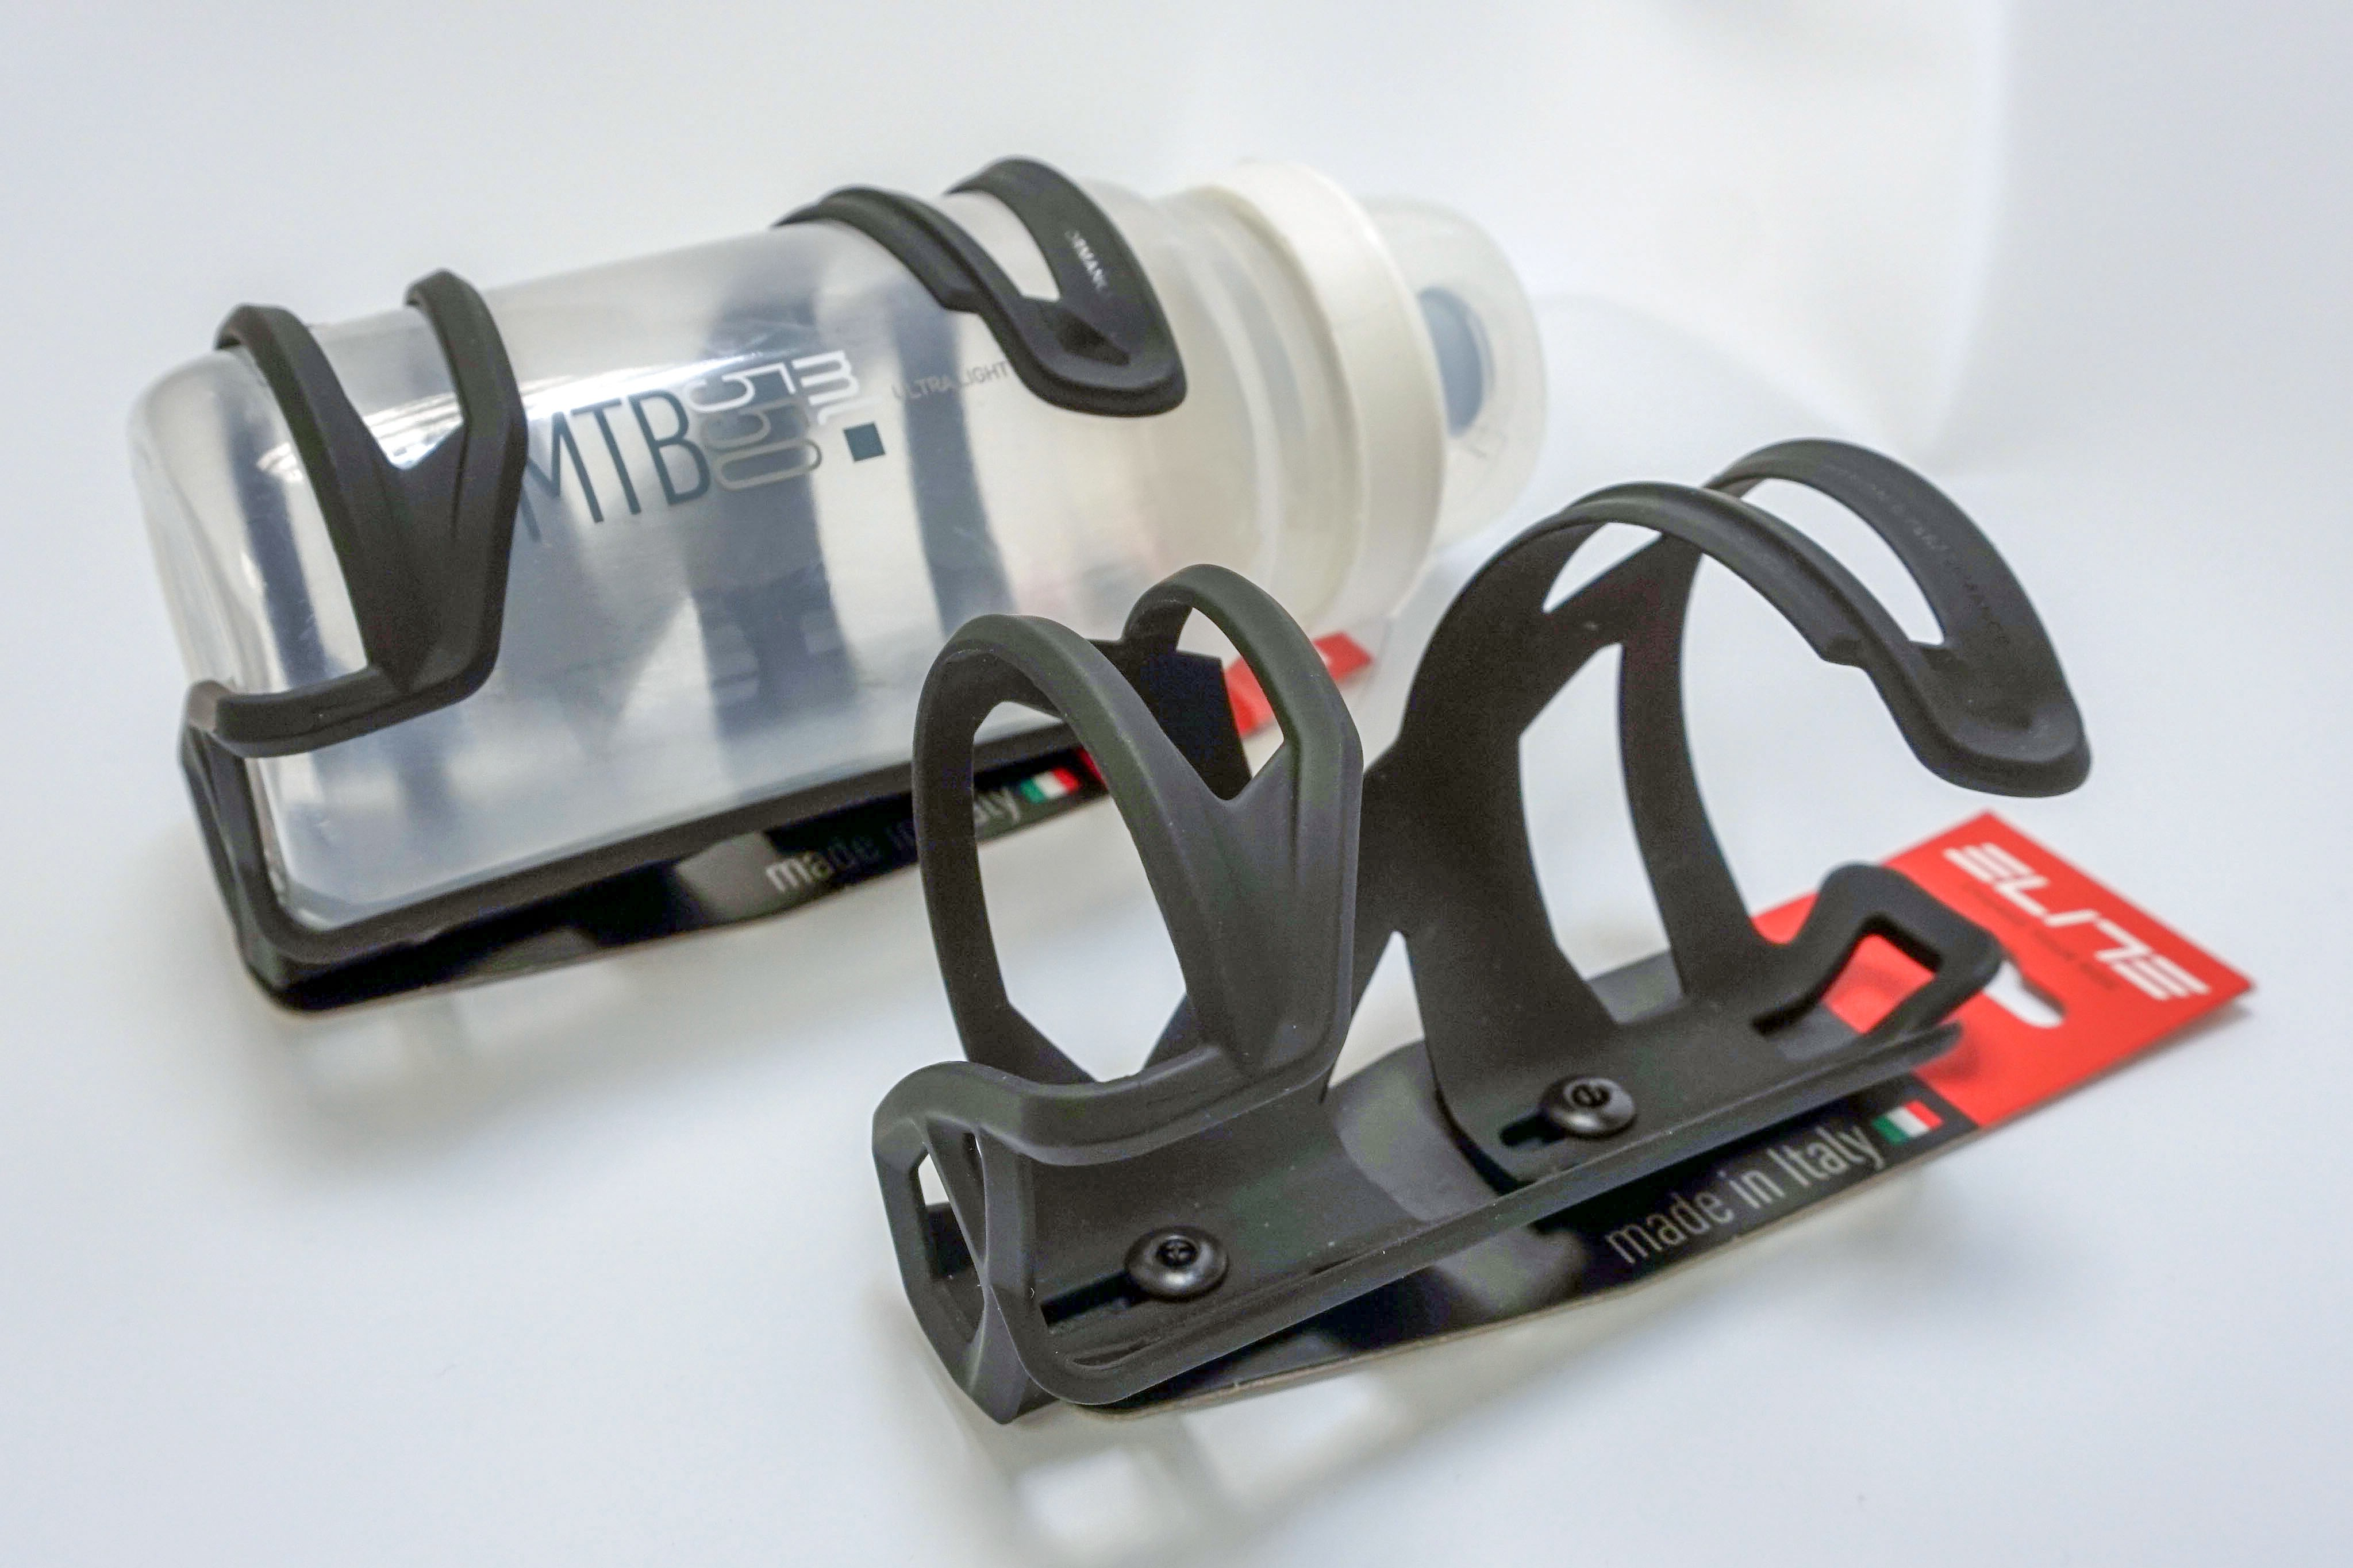 Two Elite Prism side-loading bottle cages, one with a bottle in place